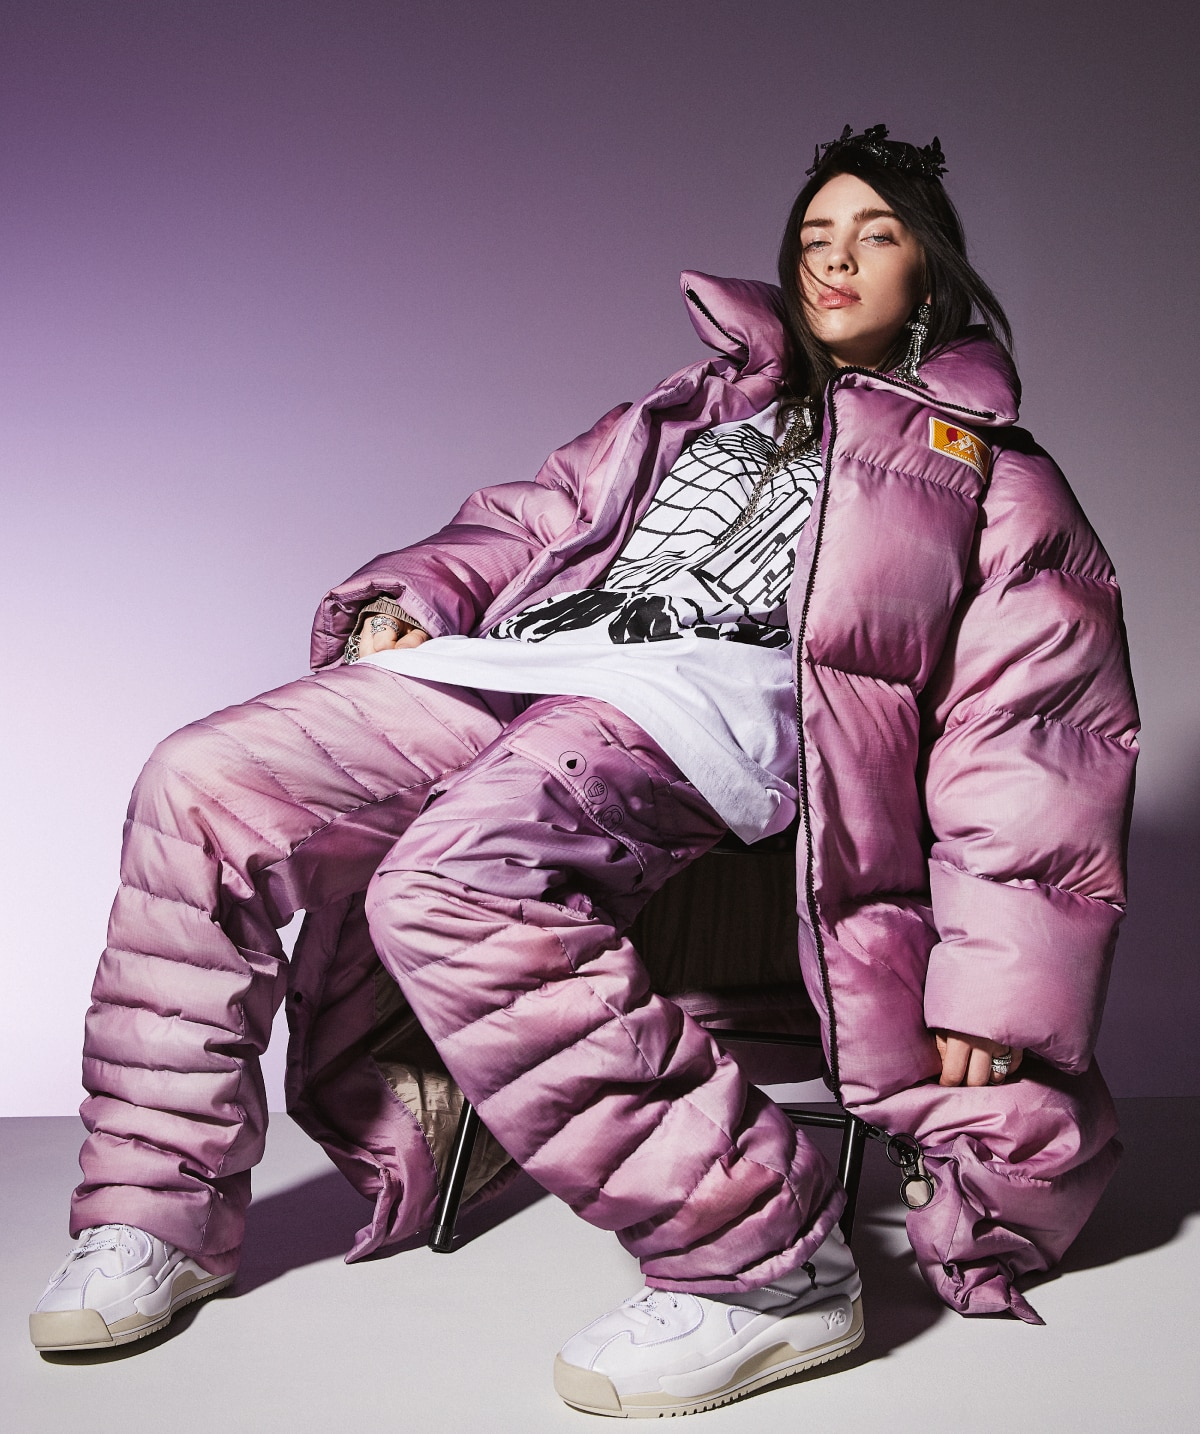 Billie Eilish on her love of fashion and why she opts for oversized styles